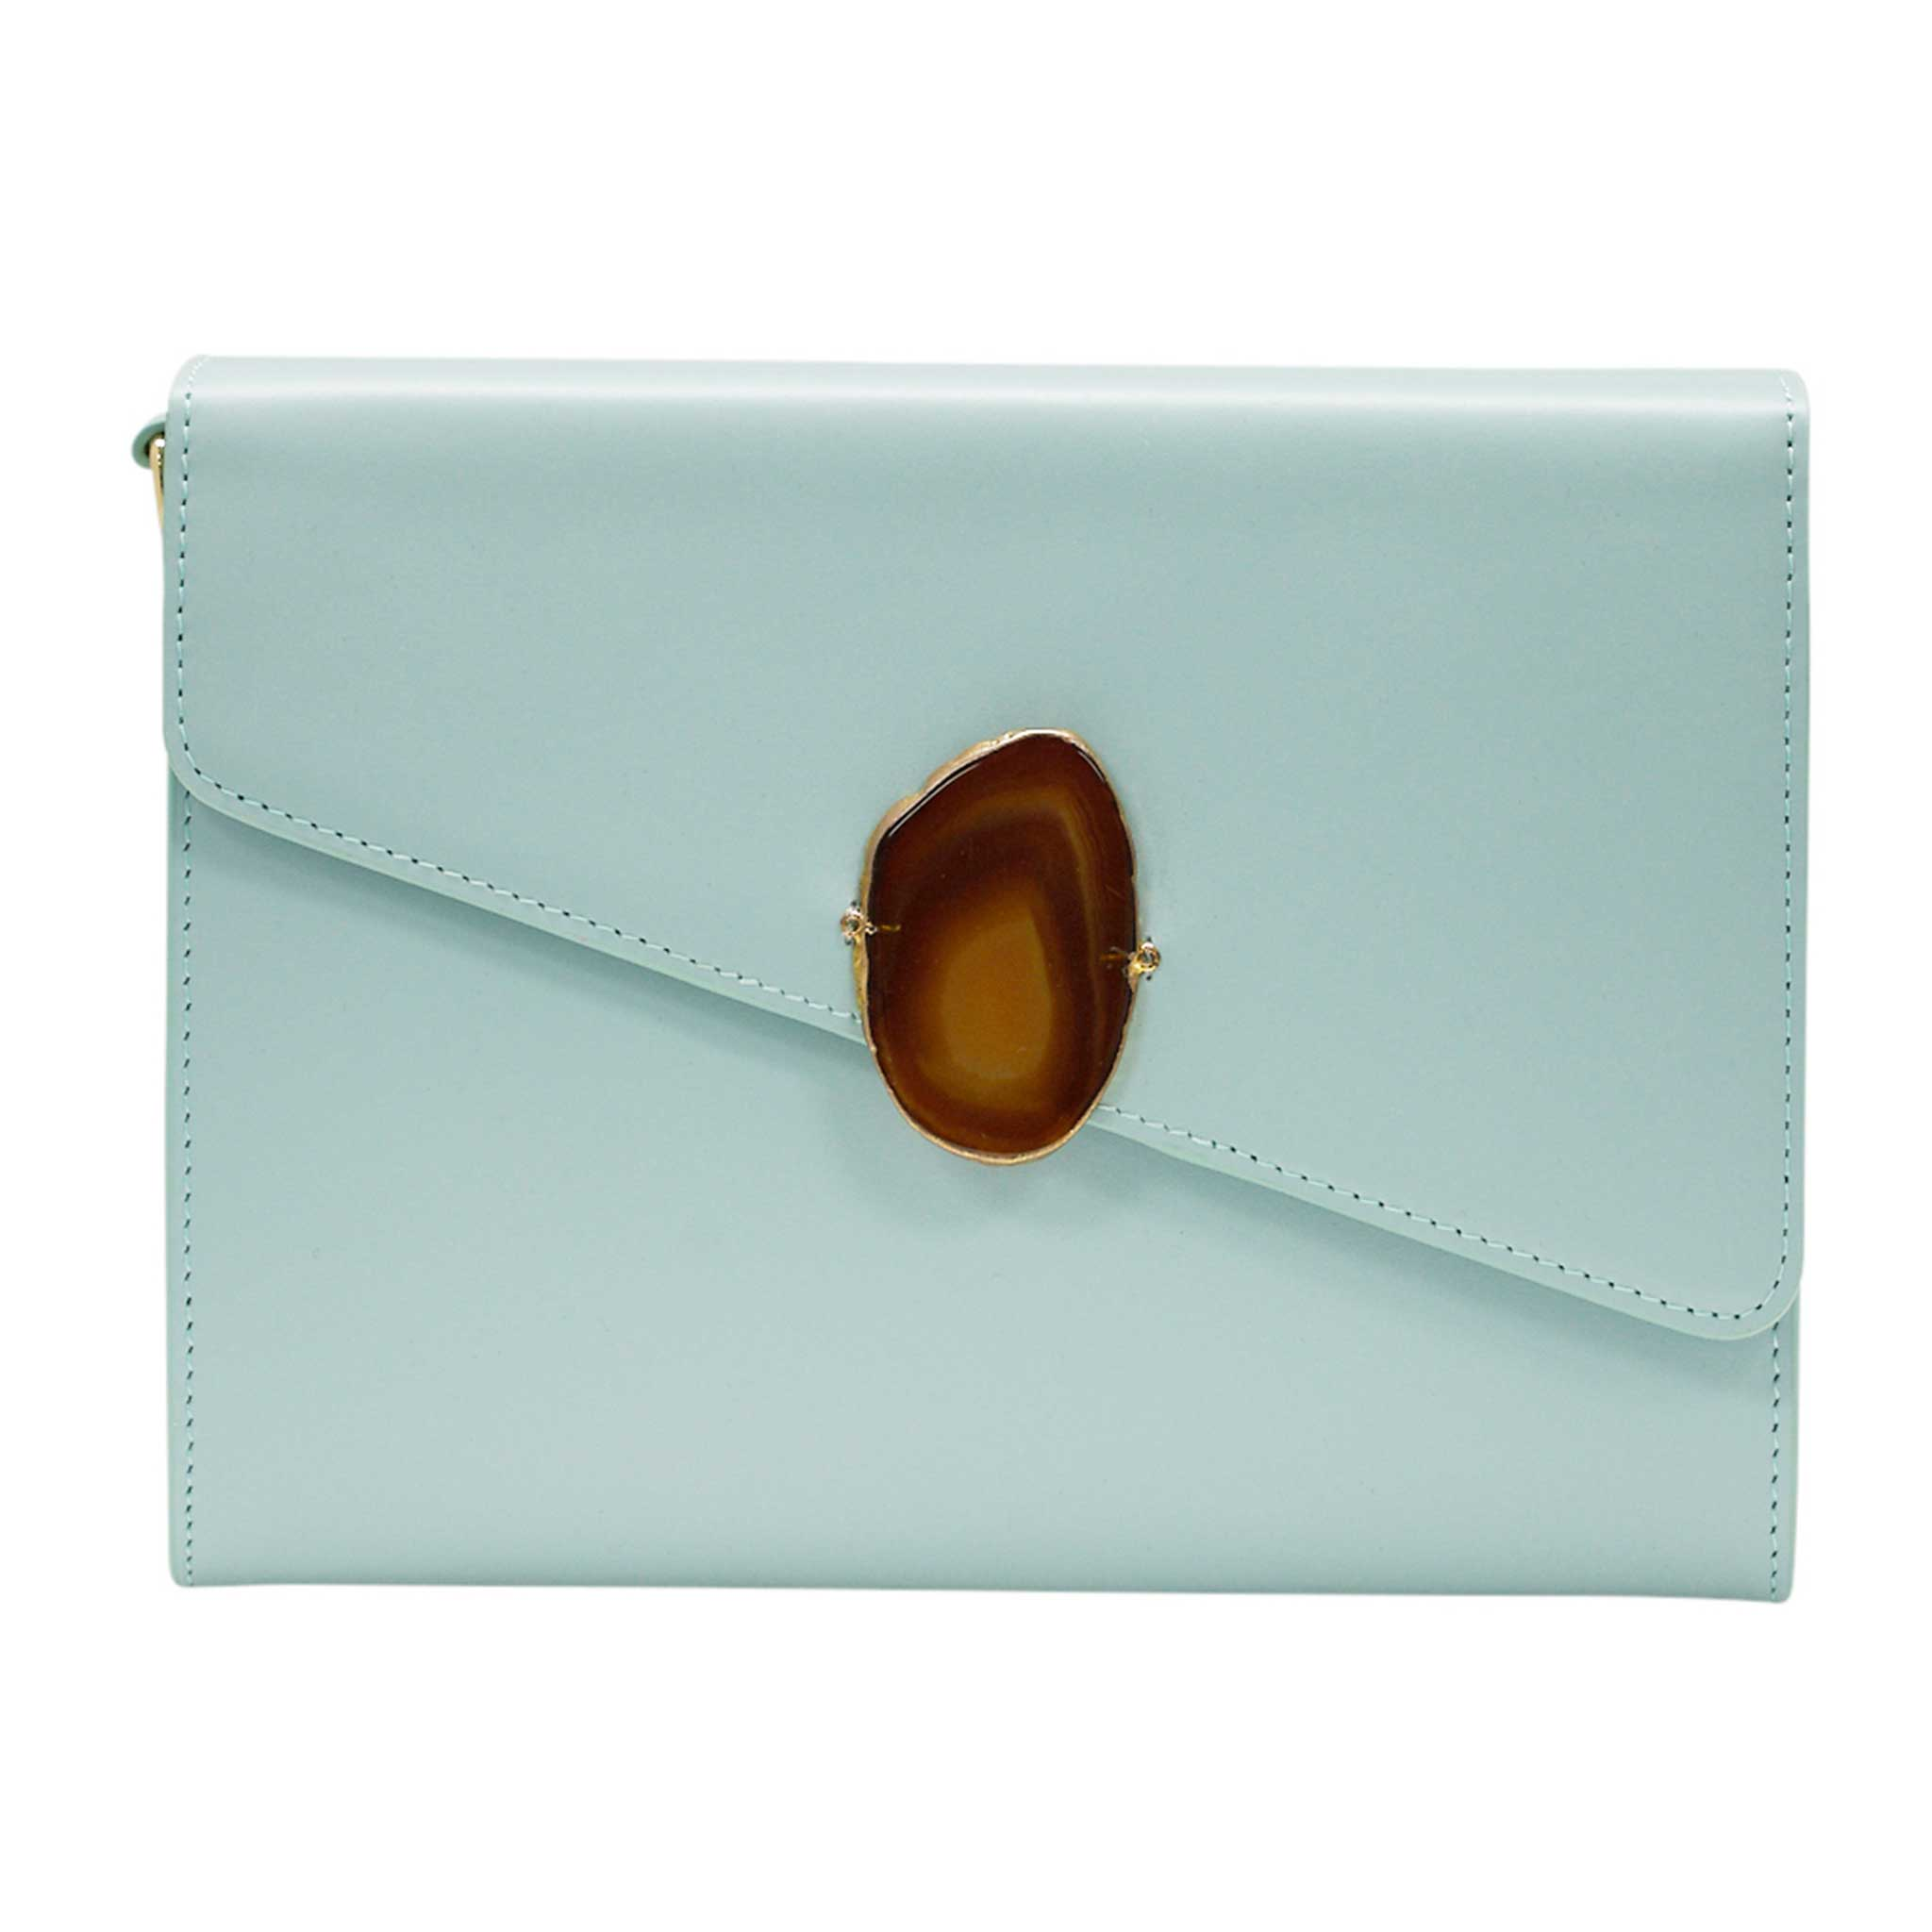 LOVED BAG - MOONSTONE WHITE LEATHER WITH BROWN AGATE - 1.02.004.042